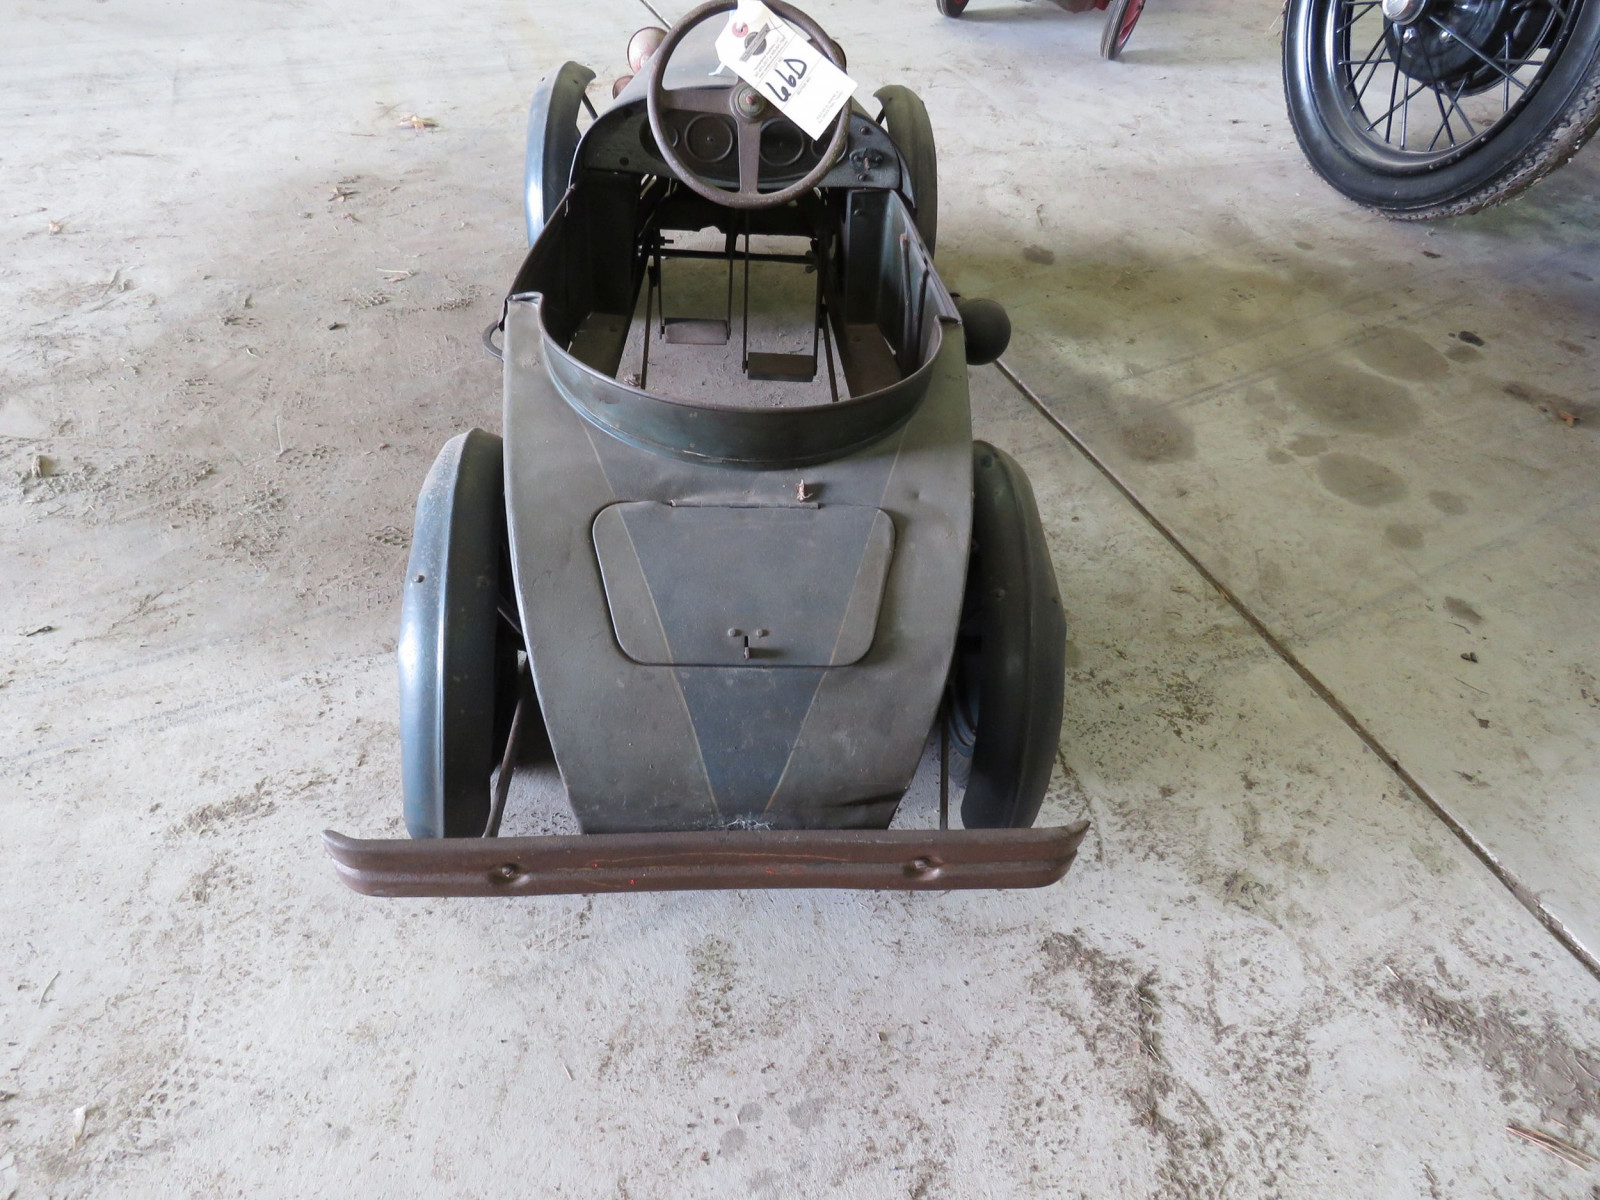 Vintage Regal Cycles Roadster Pedal Car - Image 6